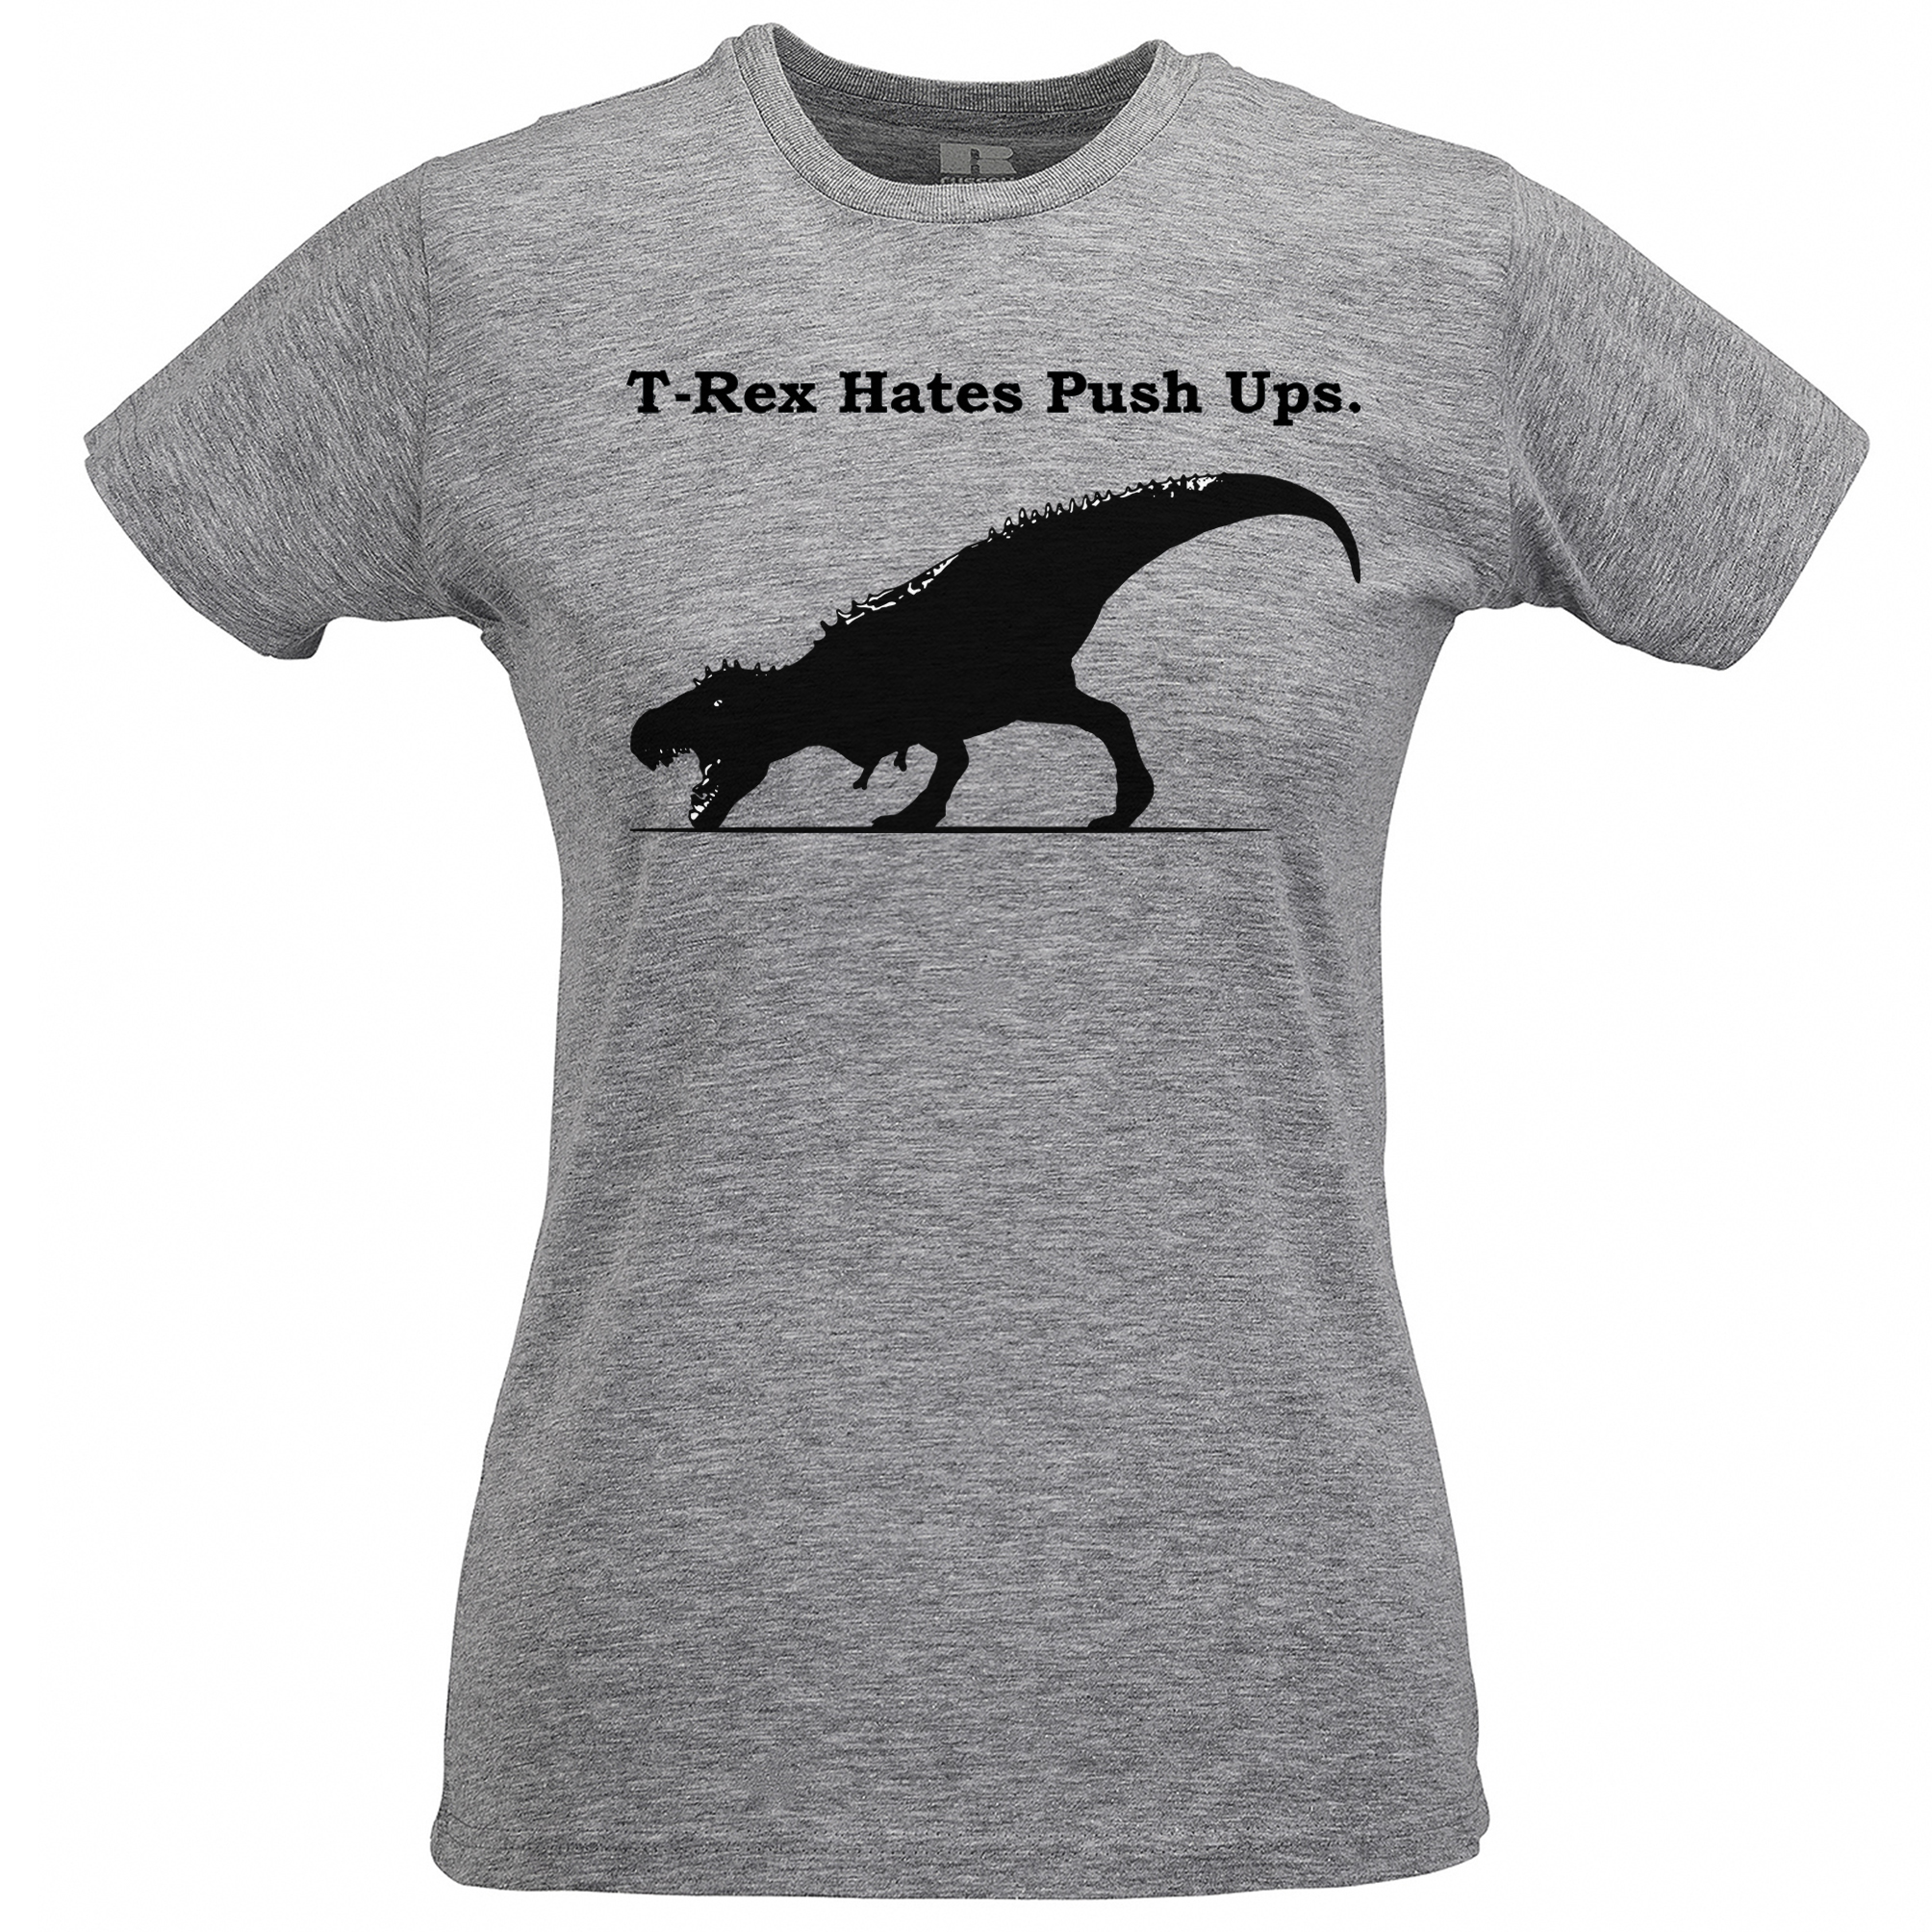 T Rex Hates Push Ups T Shirt Awkward Historical Dinosaur Work Out Jurassic  men tshirts grey color plus L size-in T-Shirts from Men's Clothing &  Accessories ...